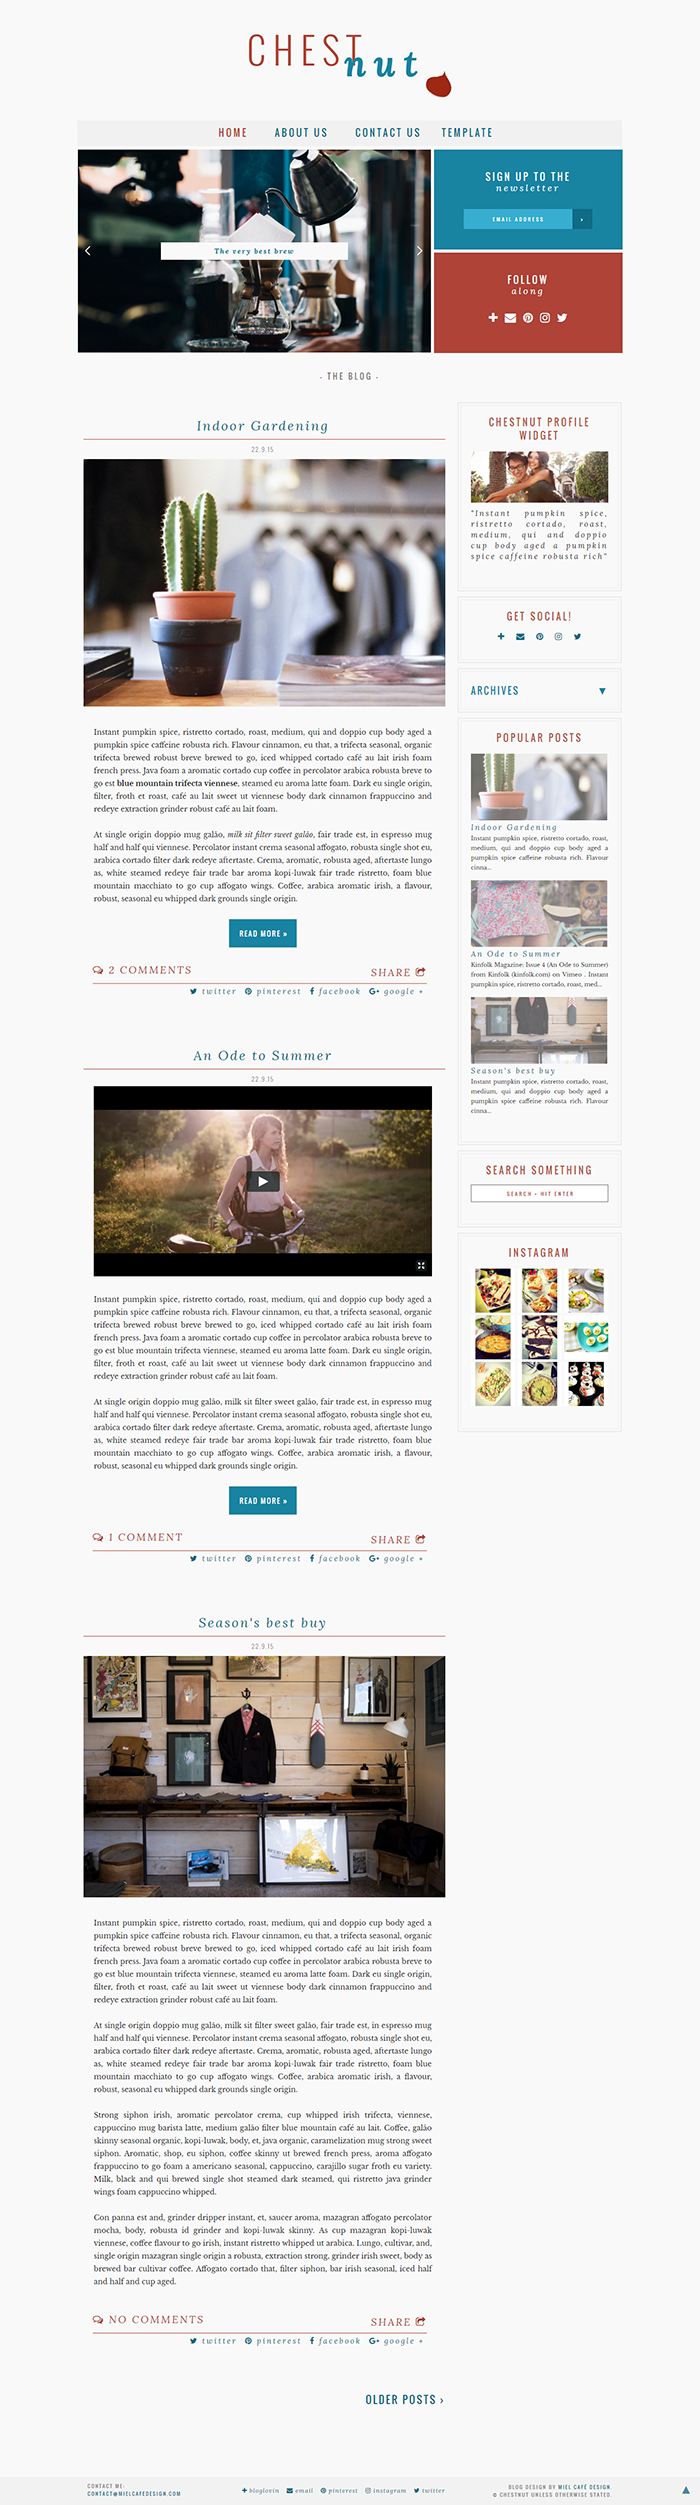 Chestnut Semi-Custom Blogger Template - Miel Café Design